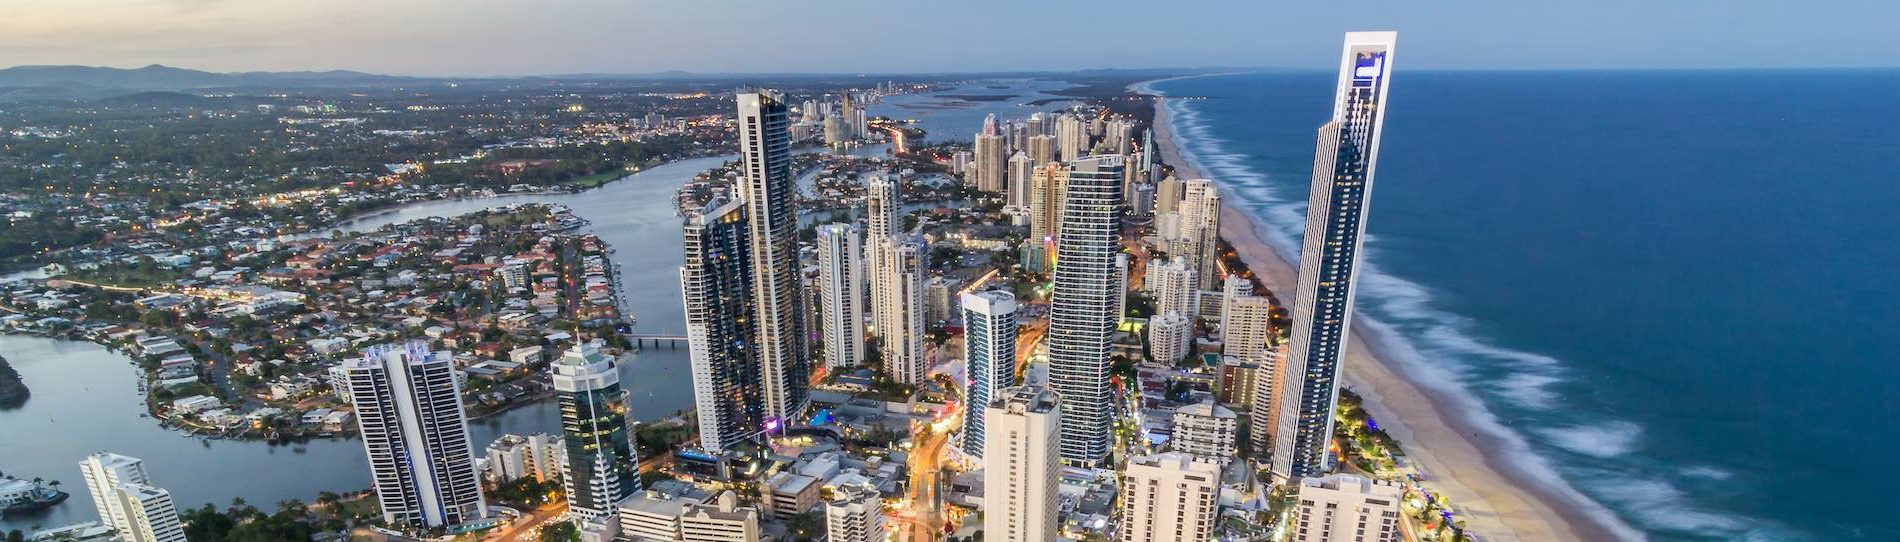 aerial view of gold coast city